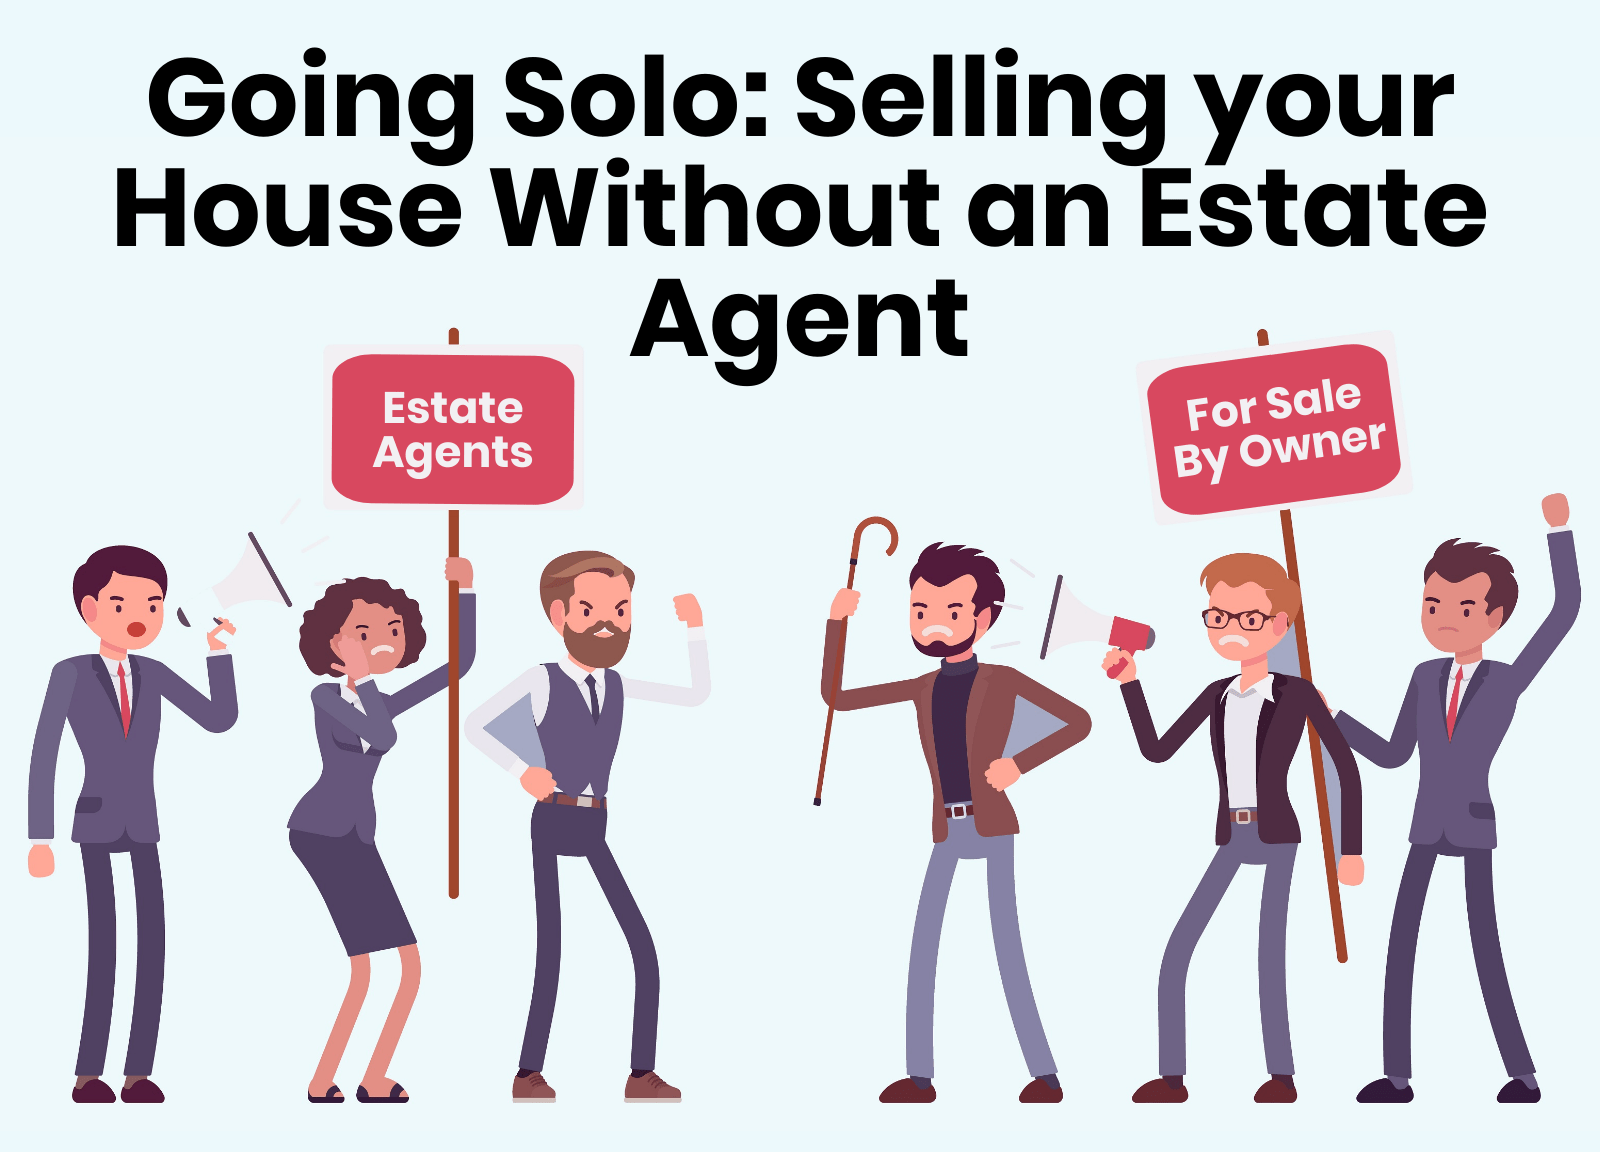 Going solo, how to sell your house without an estate agent